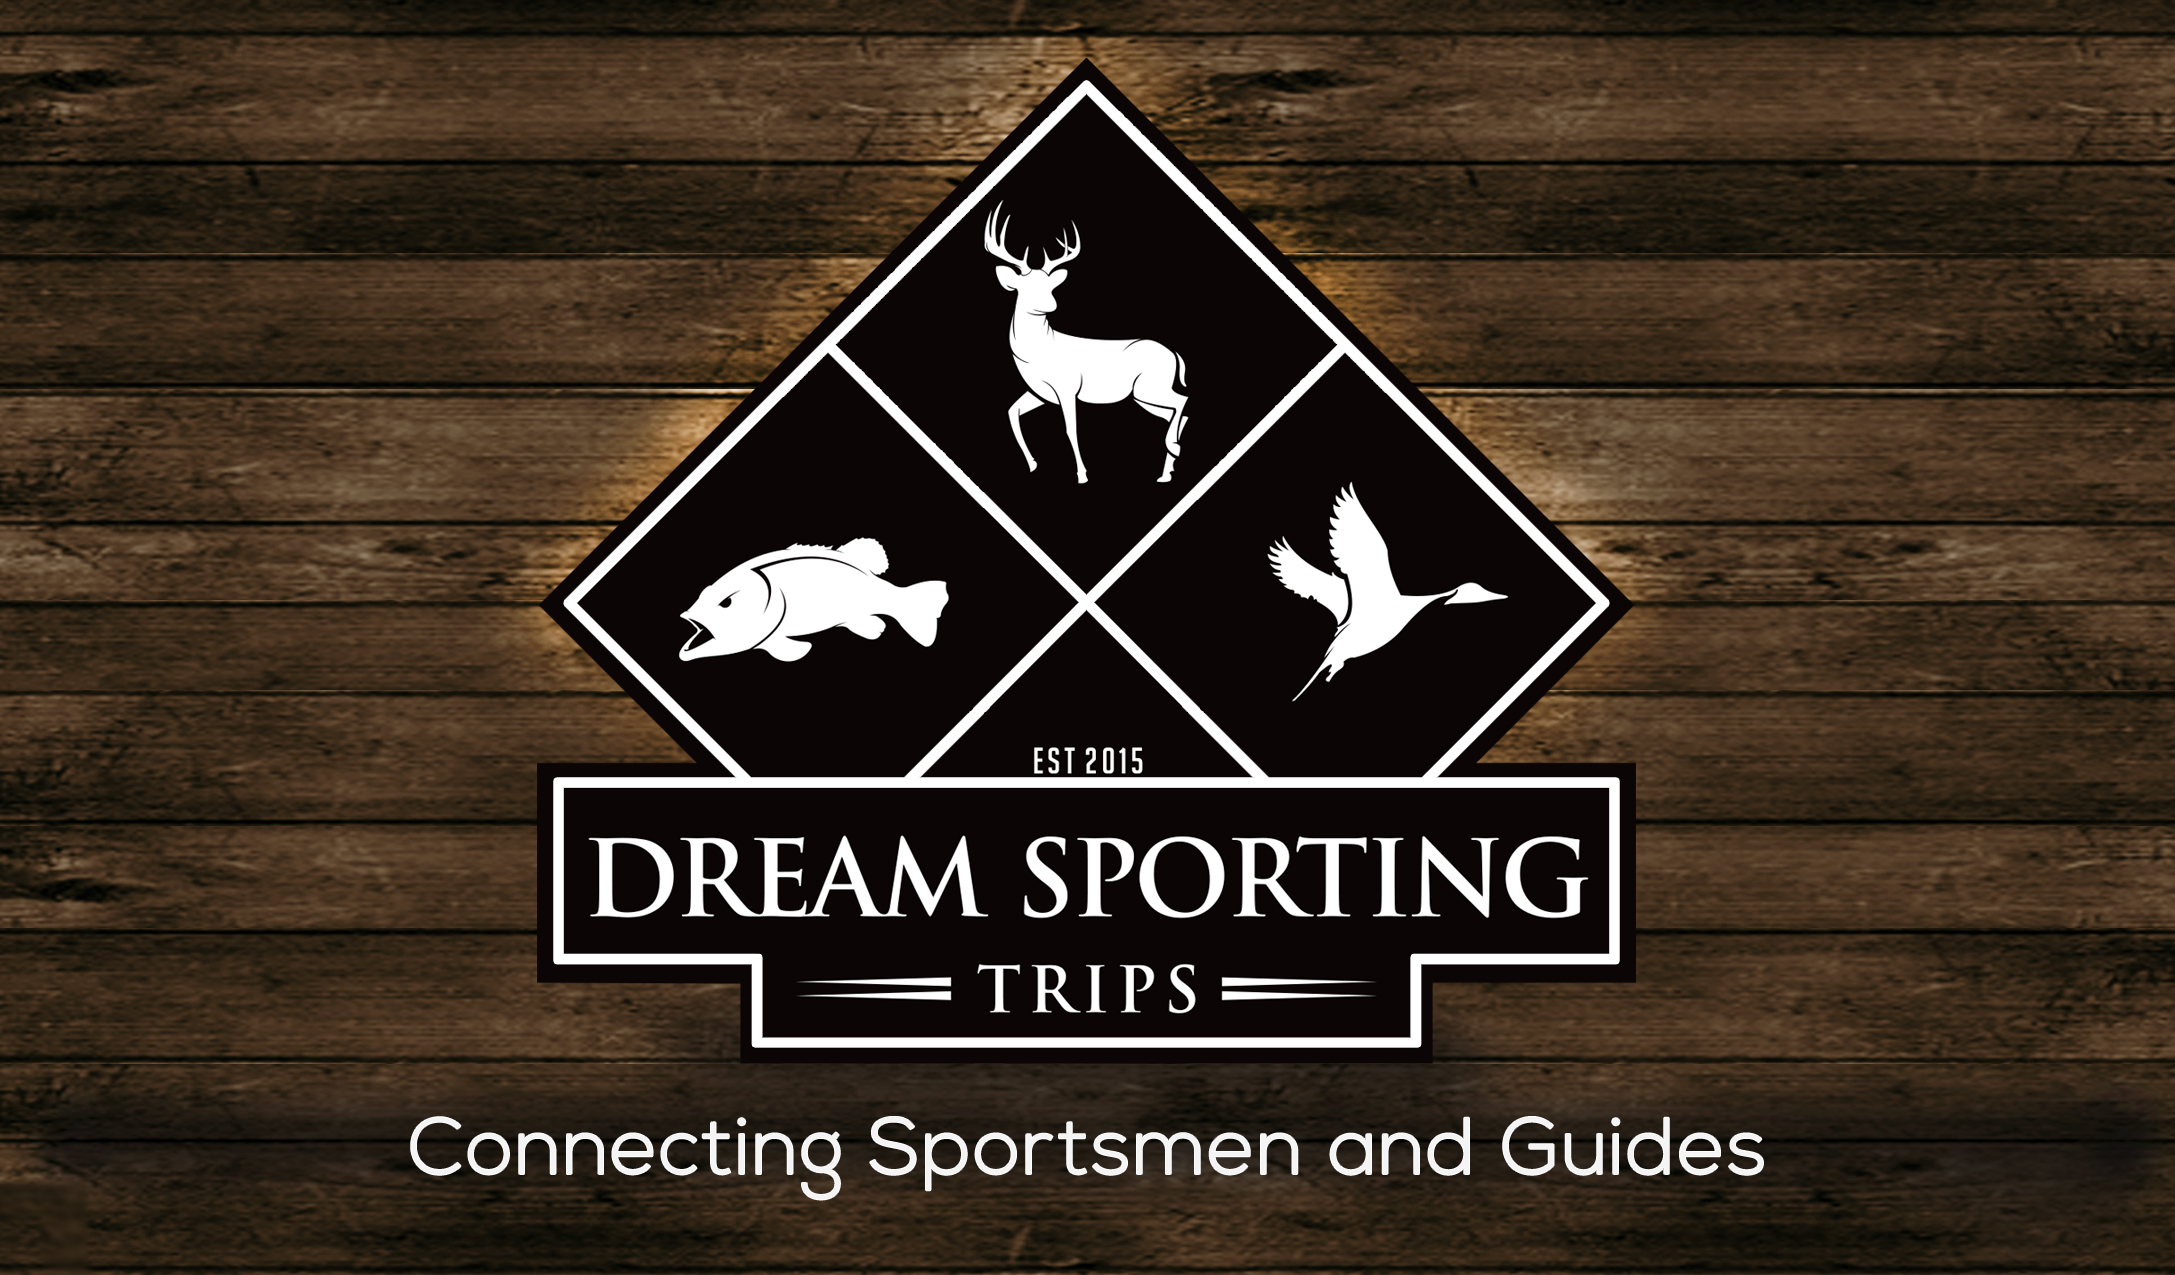 Dream Sporting Trips Back of business card